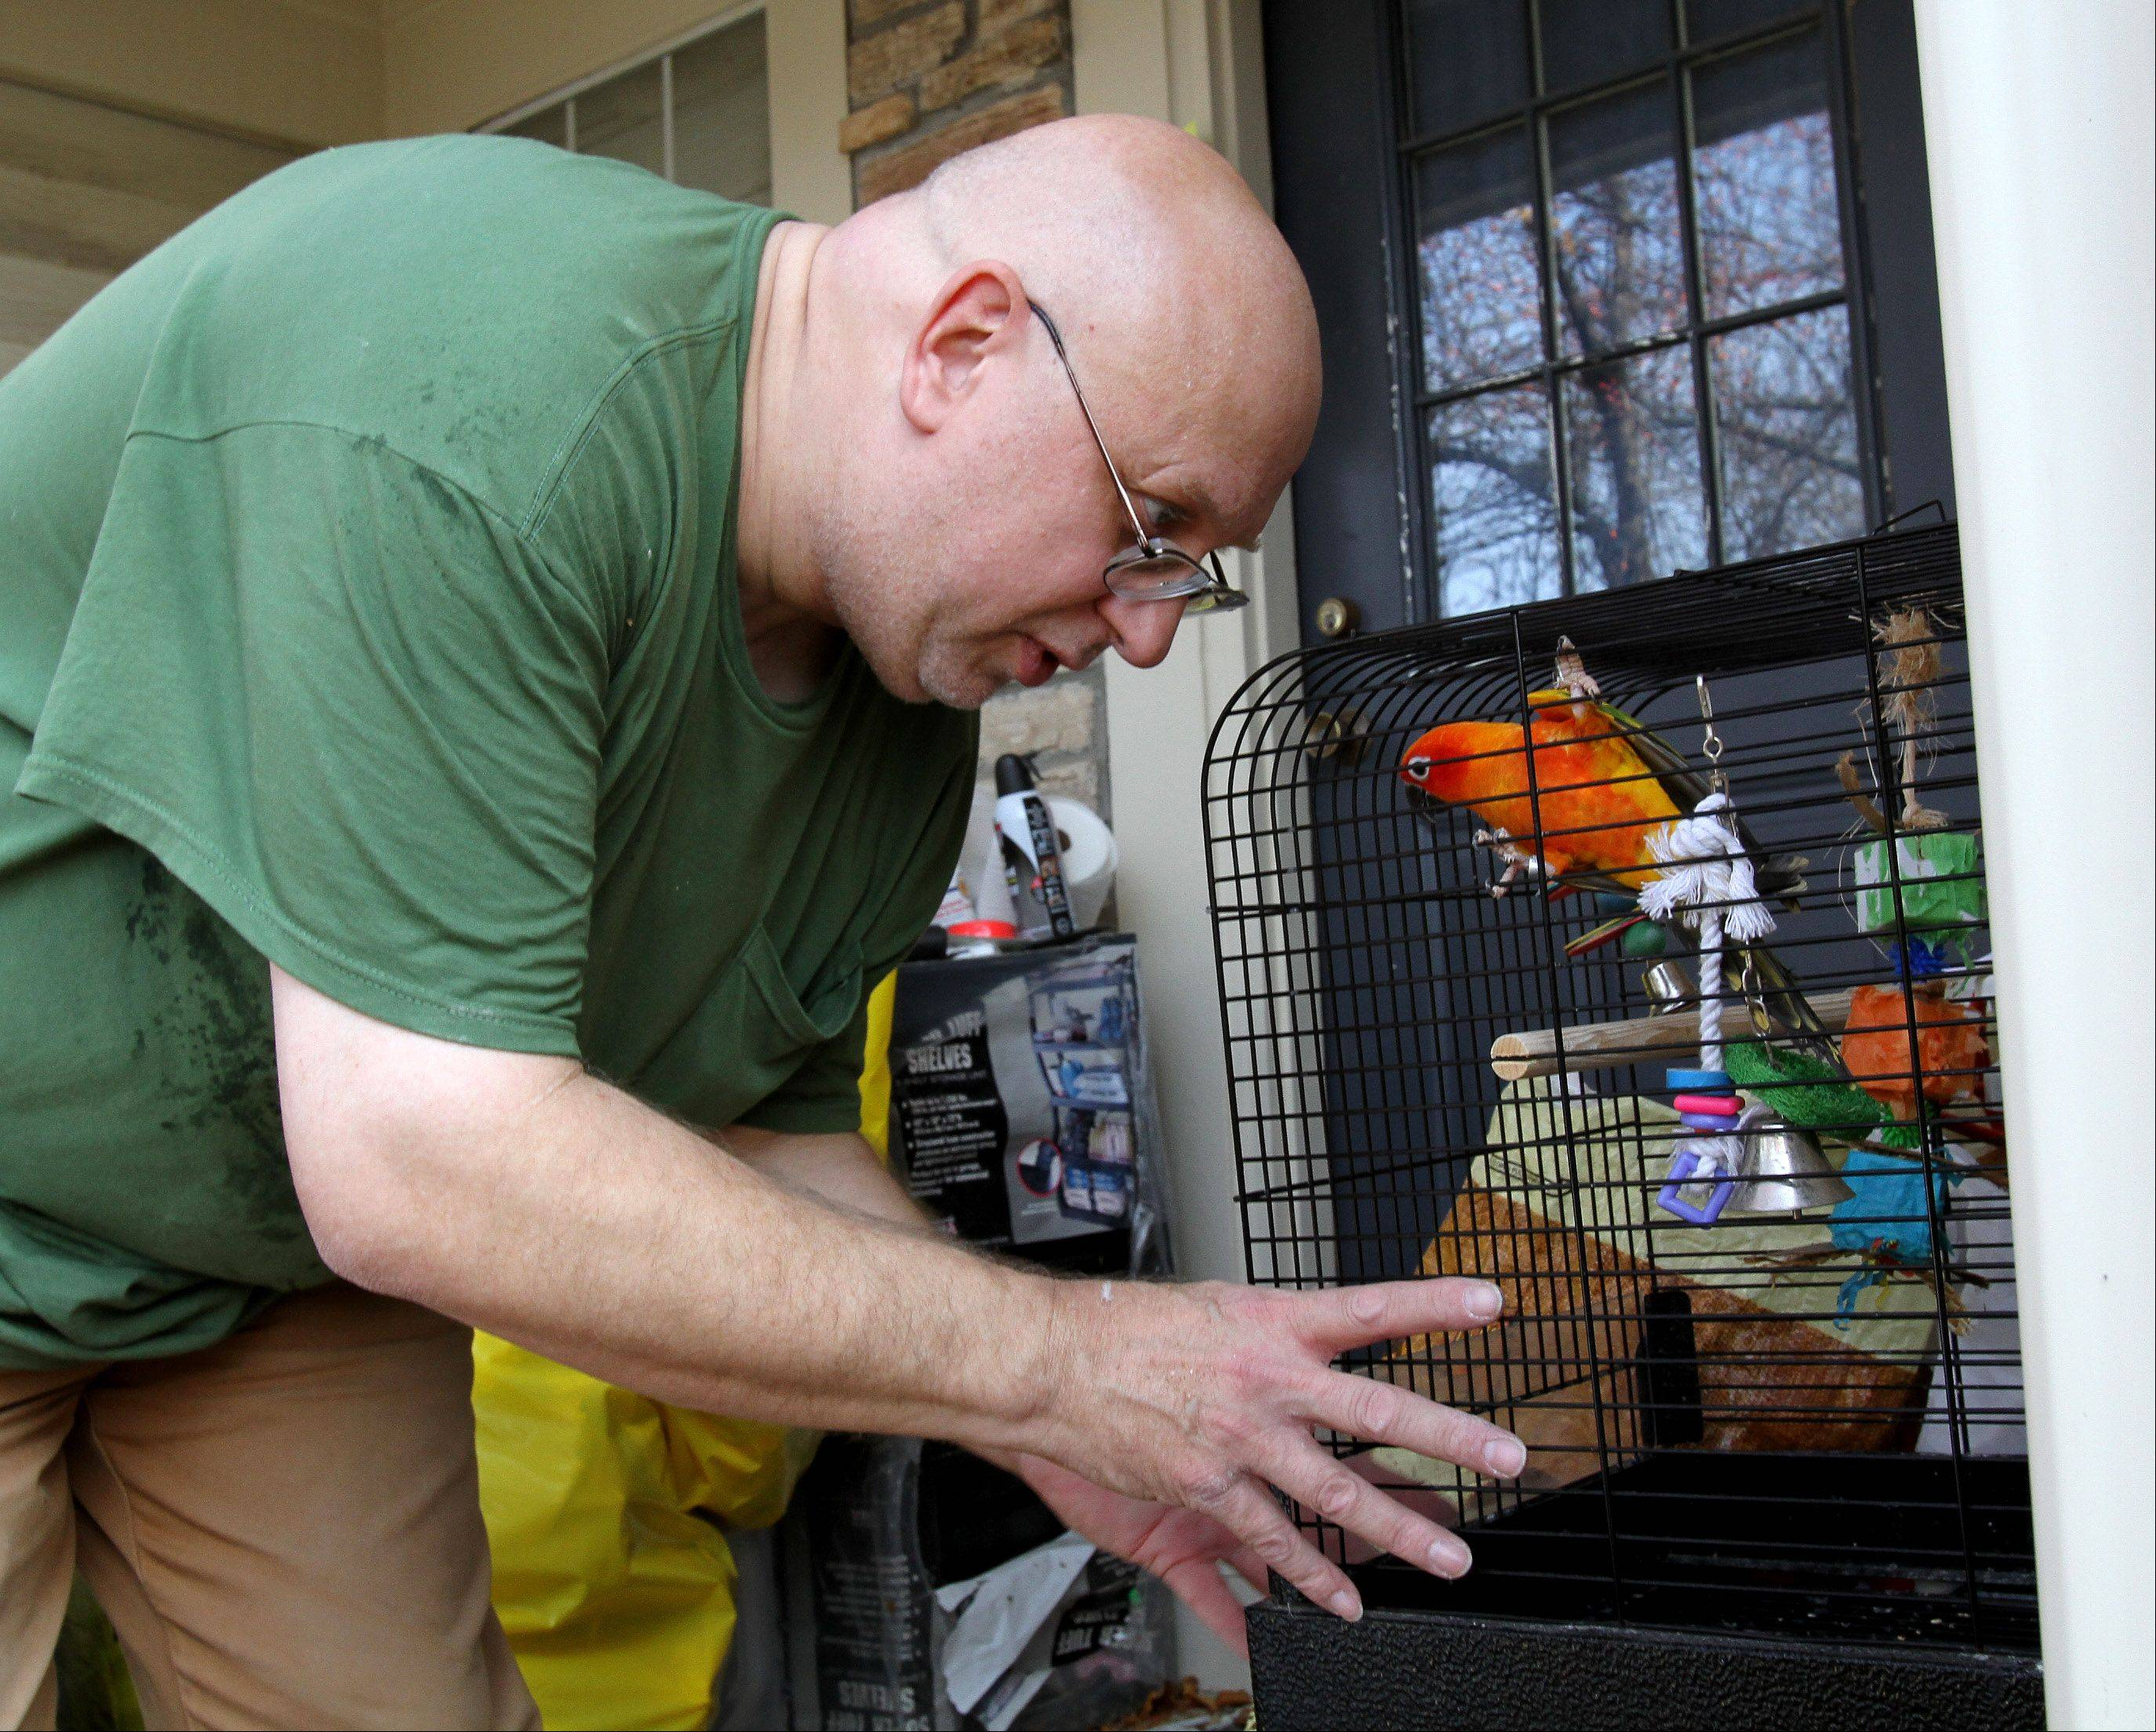 Dave Skeberdis of Aurora has been charged with misdemeanor companion animal hoarding after authorities found 478 birds -- 120 of them dead -- in his home last month.